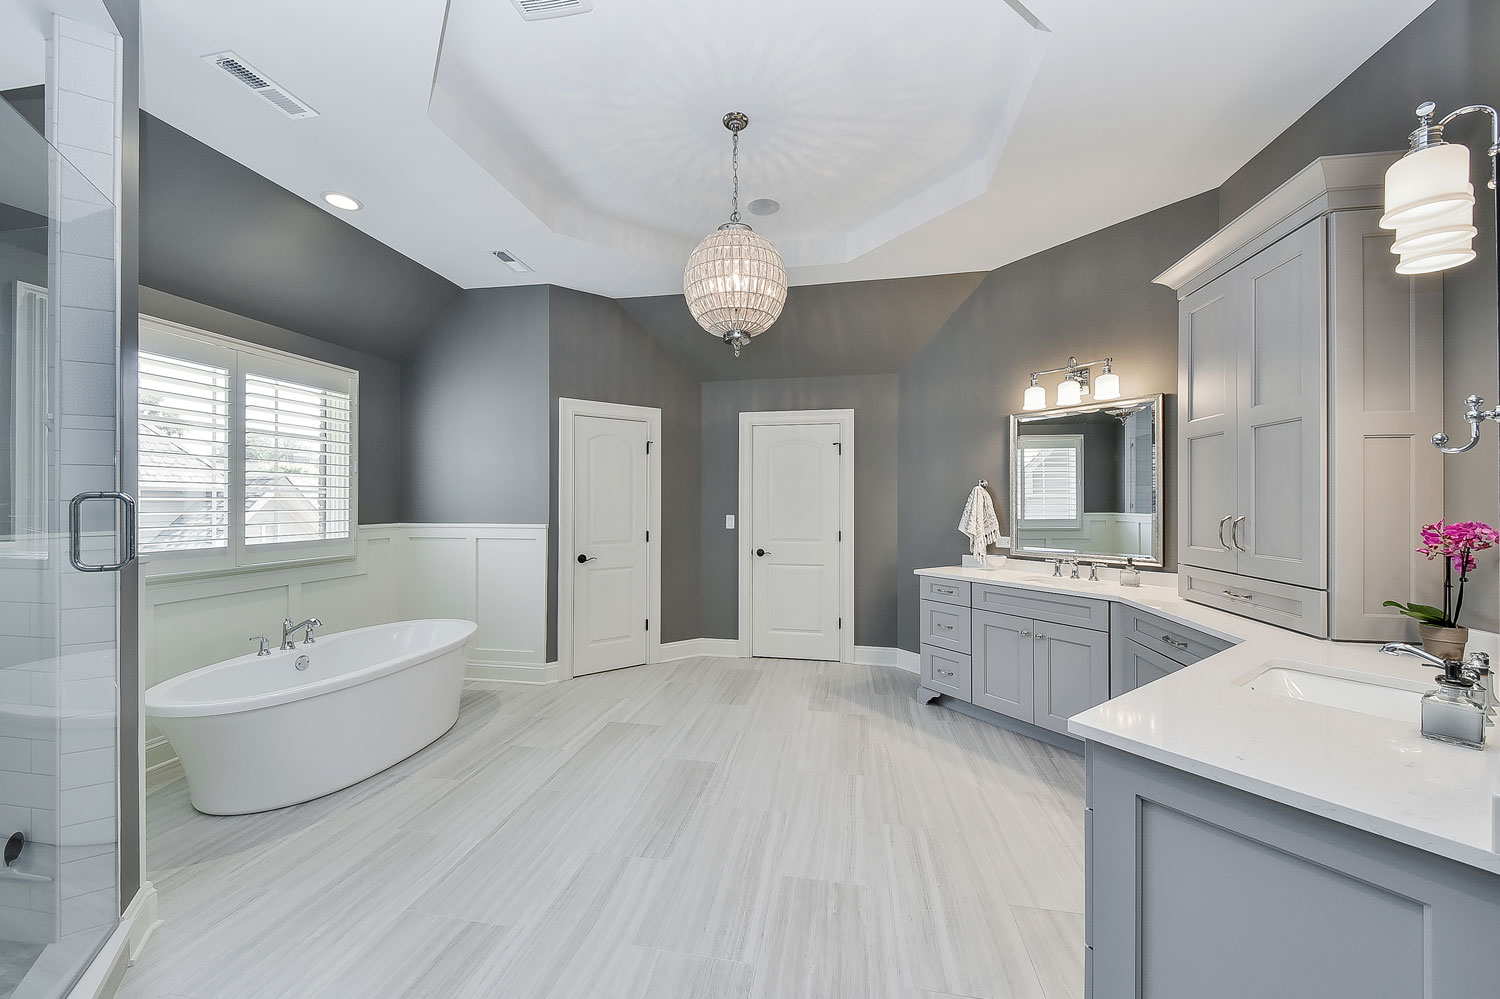 Naperville Master Bath Grey Cabinetry White Subway Freestanding Tub - Sebring Design Build